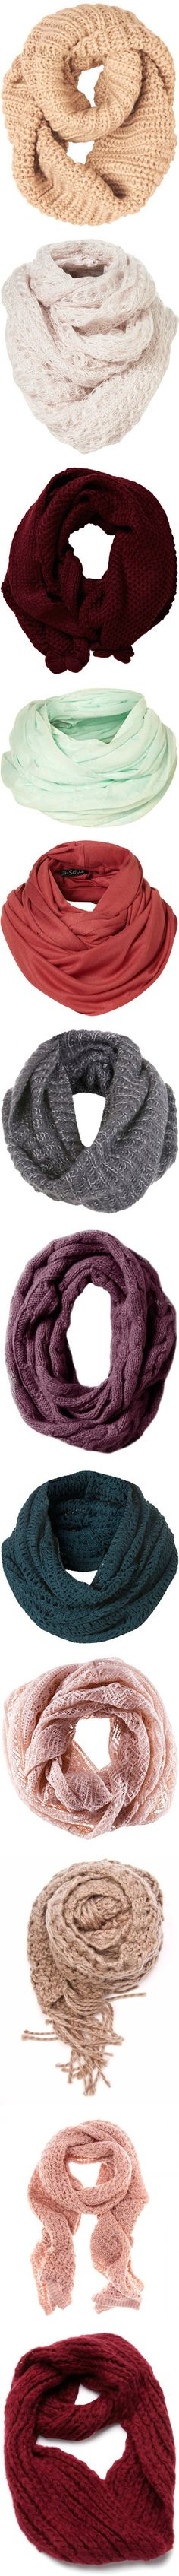 infinity scarves: every color